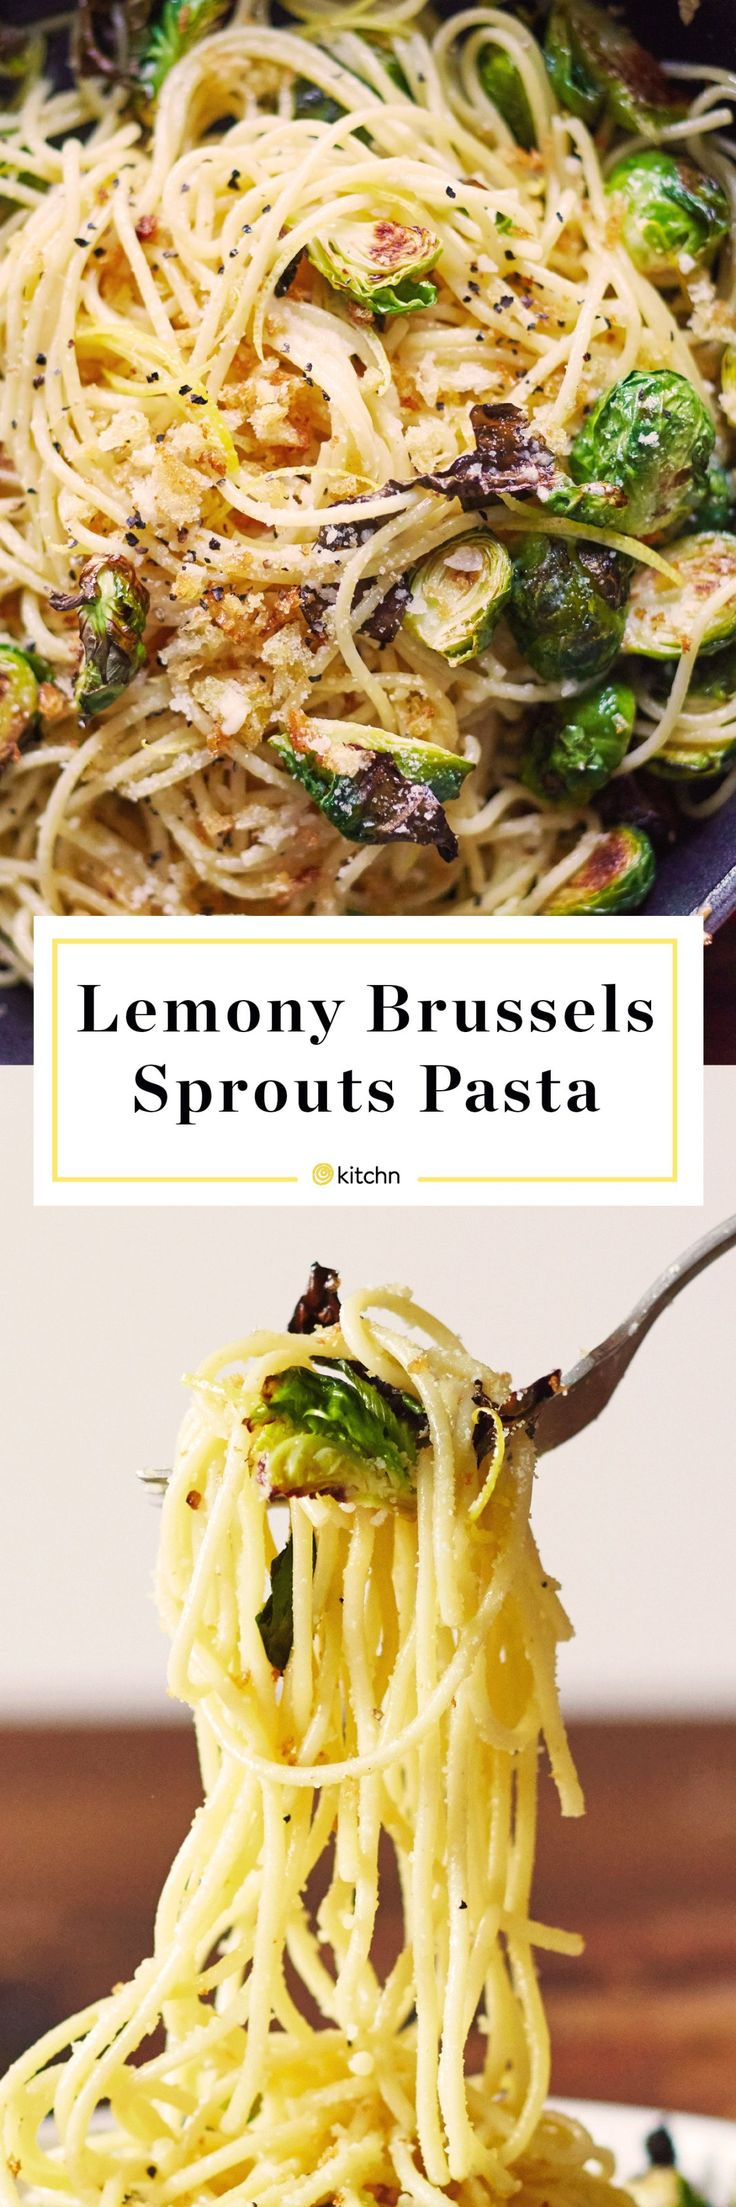 Lemon Brussels Sprouts and Breadcrumb Spaghetti Pasta Recipe. Looking for recipes and ideas for quick and easy weeknight meals and dinners? This vegetarian dish is a great way for families to eat some healthy veggies or vegetables. You'll need olive oil, bread crumbs, lemon zest and juice, brussels sprouts, garlic, red pepper flakes, white wine, parmesan cheese.